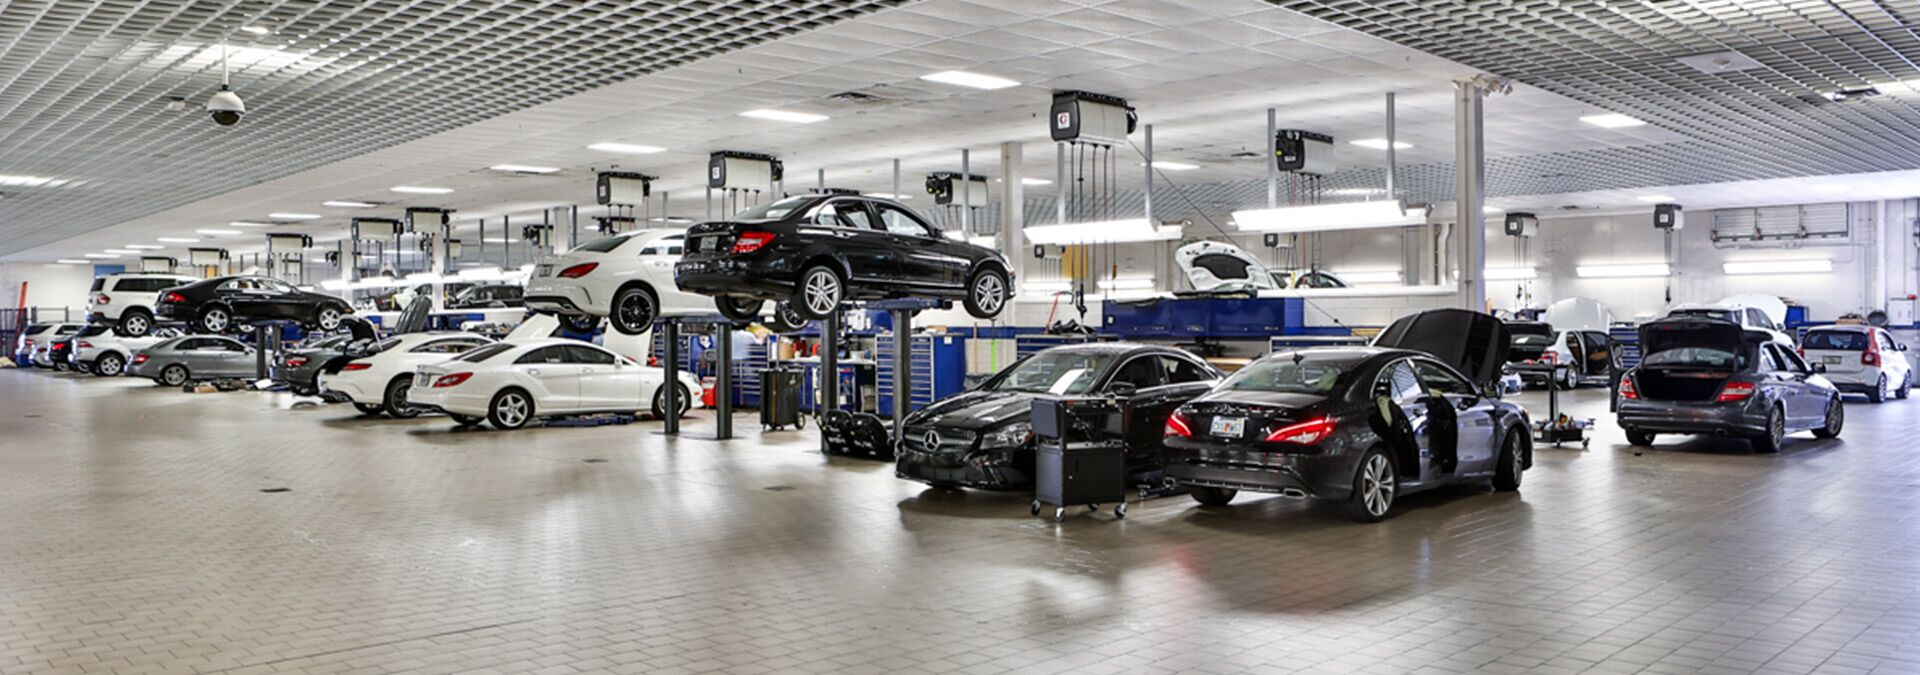 Mercedes benz dealership near me miami fl mercedes benz for Mercedes benz service miami